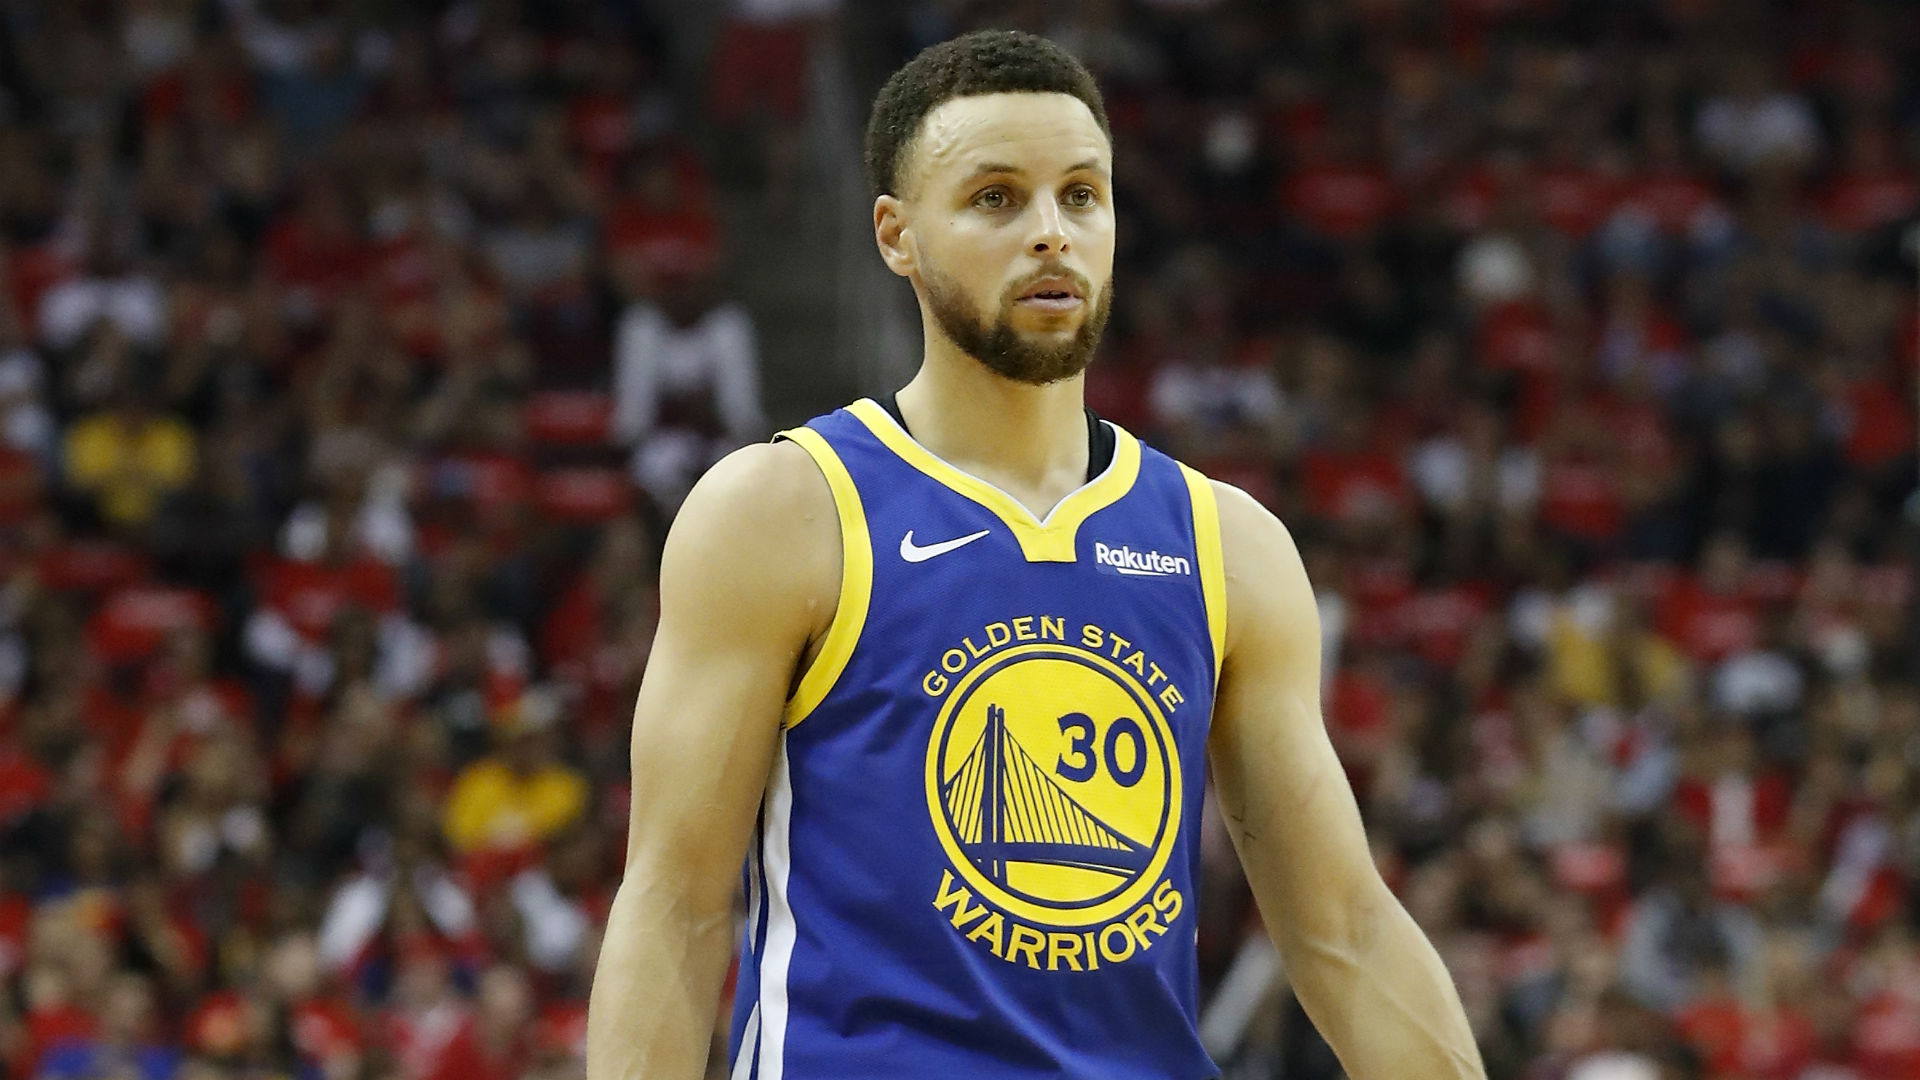 NBA playoffs 2019: Three takeaways from the Warriors' series-clinching Game 6 win